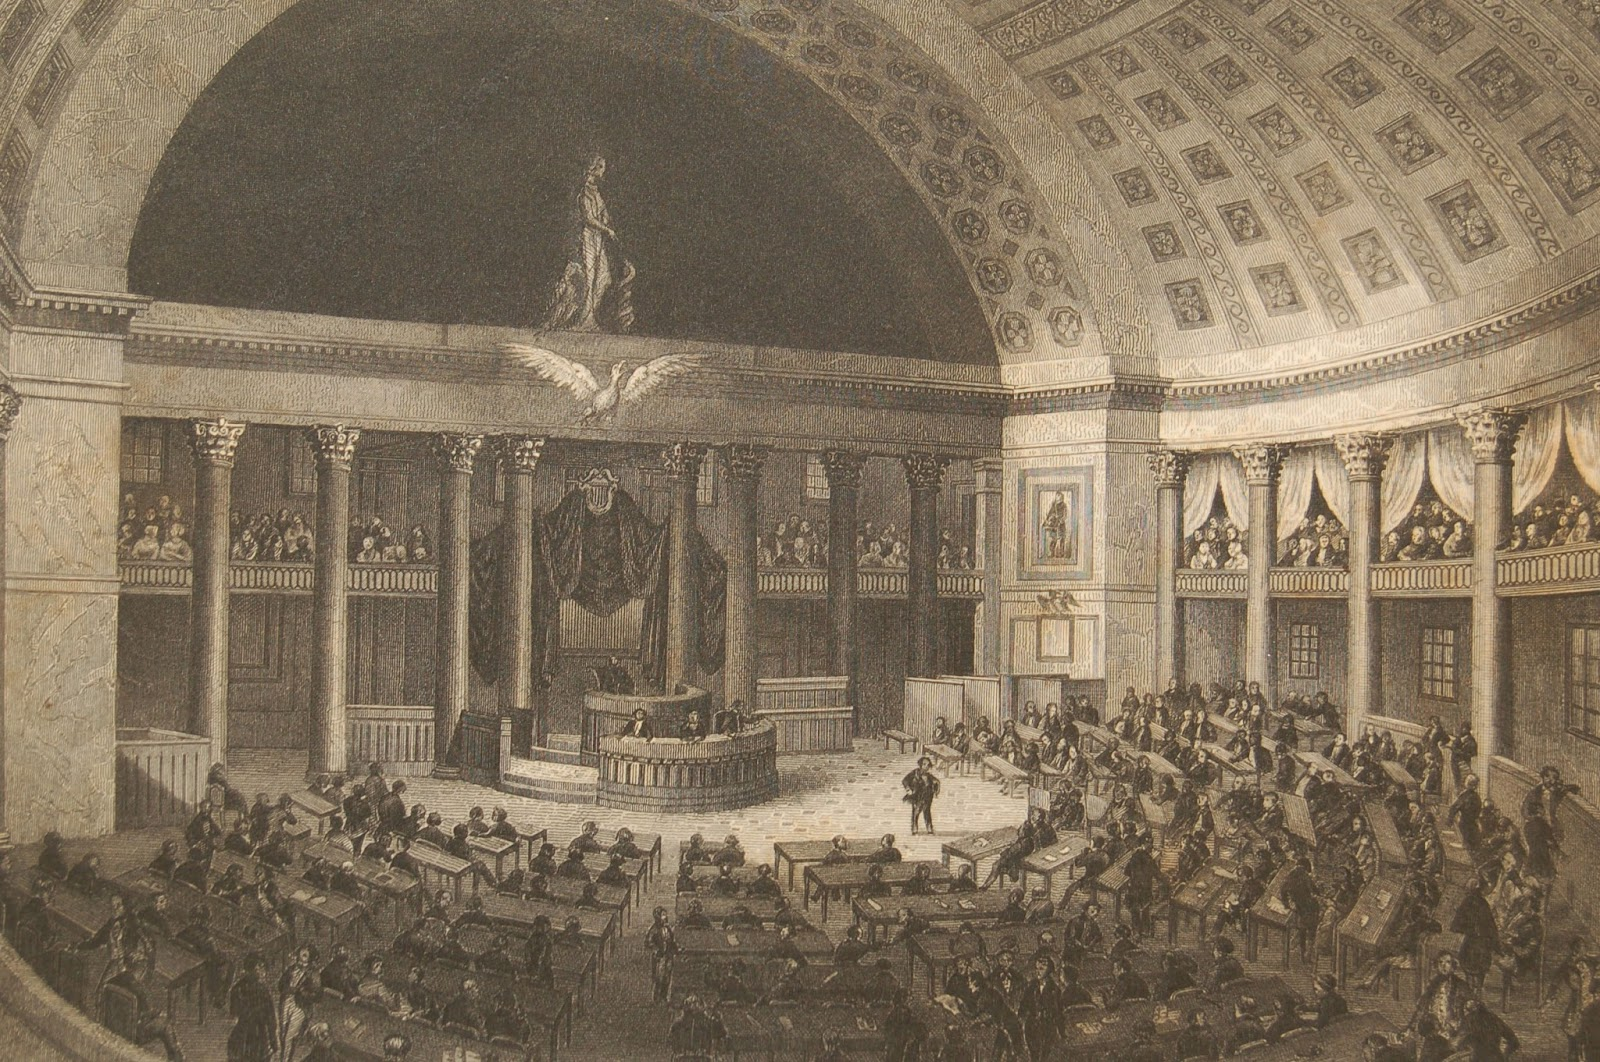 Old House Chamber engraving in 1882